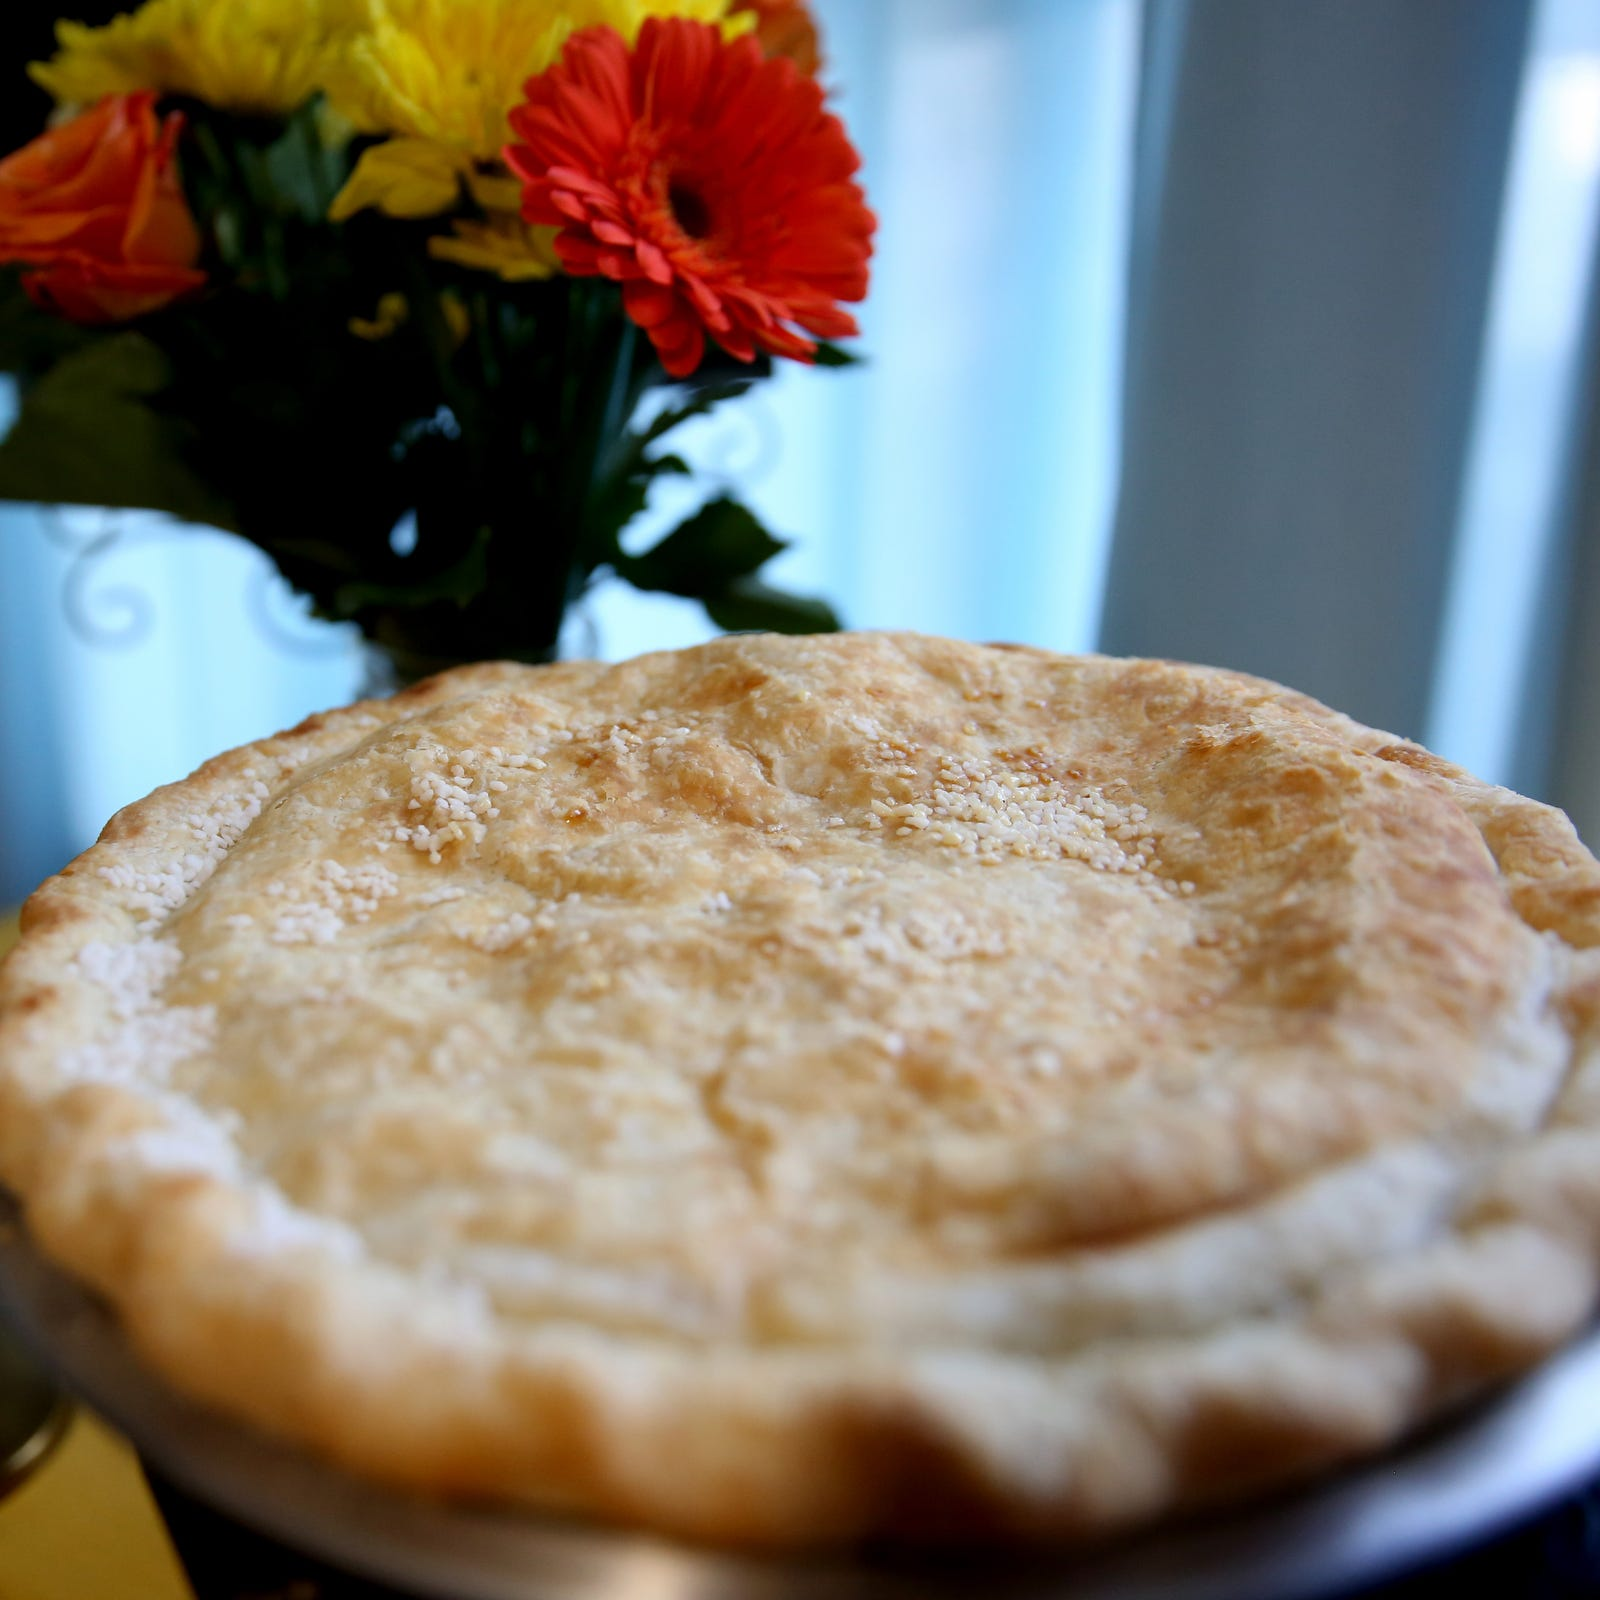 Bountiful Pies, a new West Salem bakery for pie and quiche, opens on Pi Day